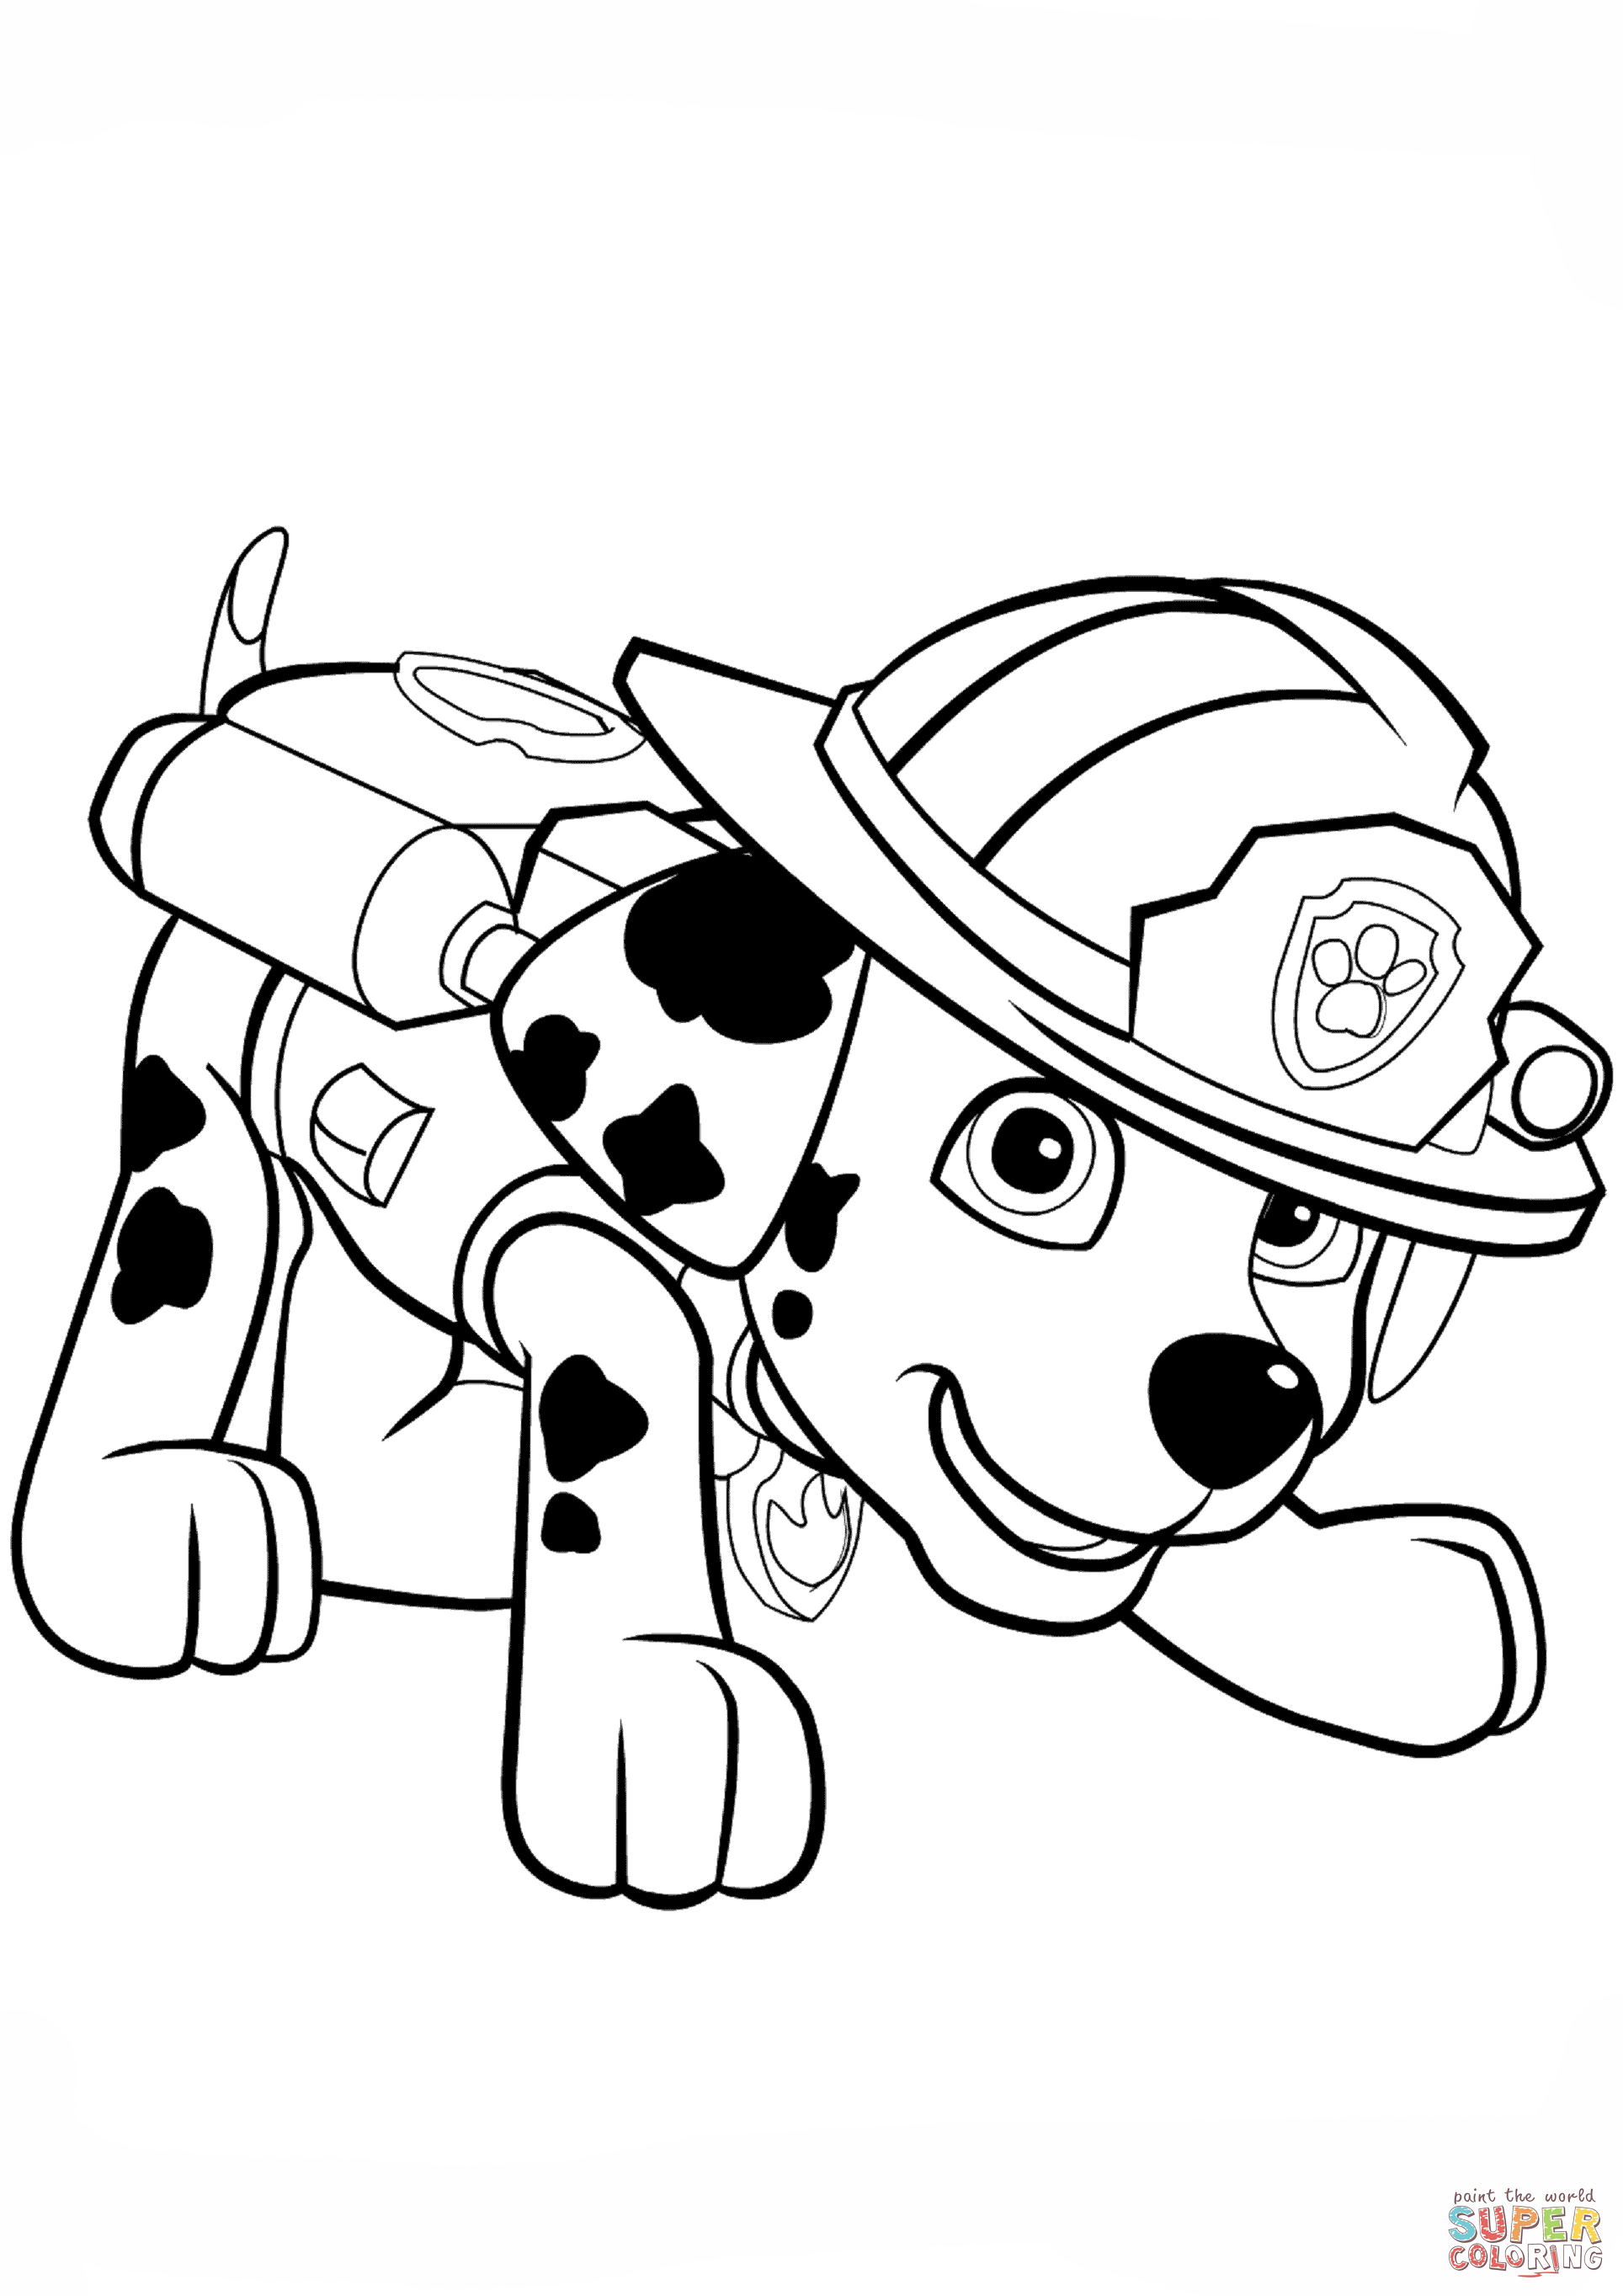 Preschool coloring games online free - Marshall Paw Patrol Coloring Pages Printable